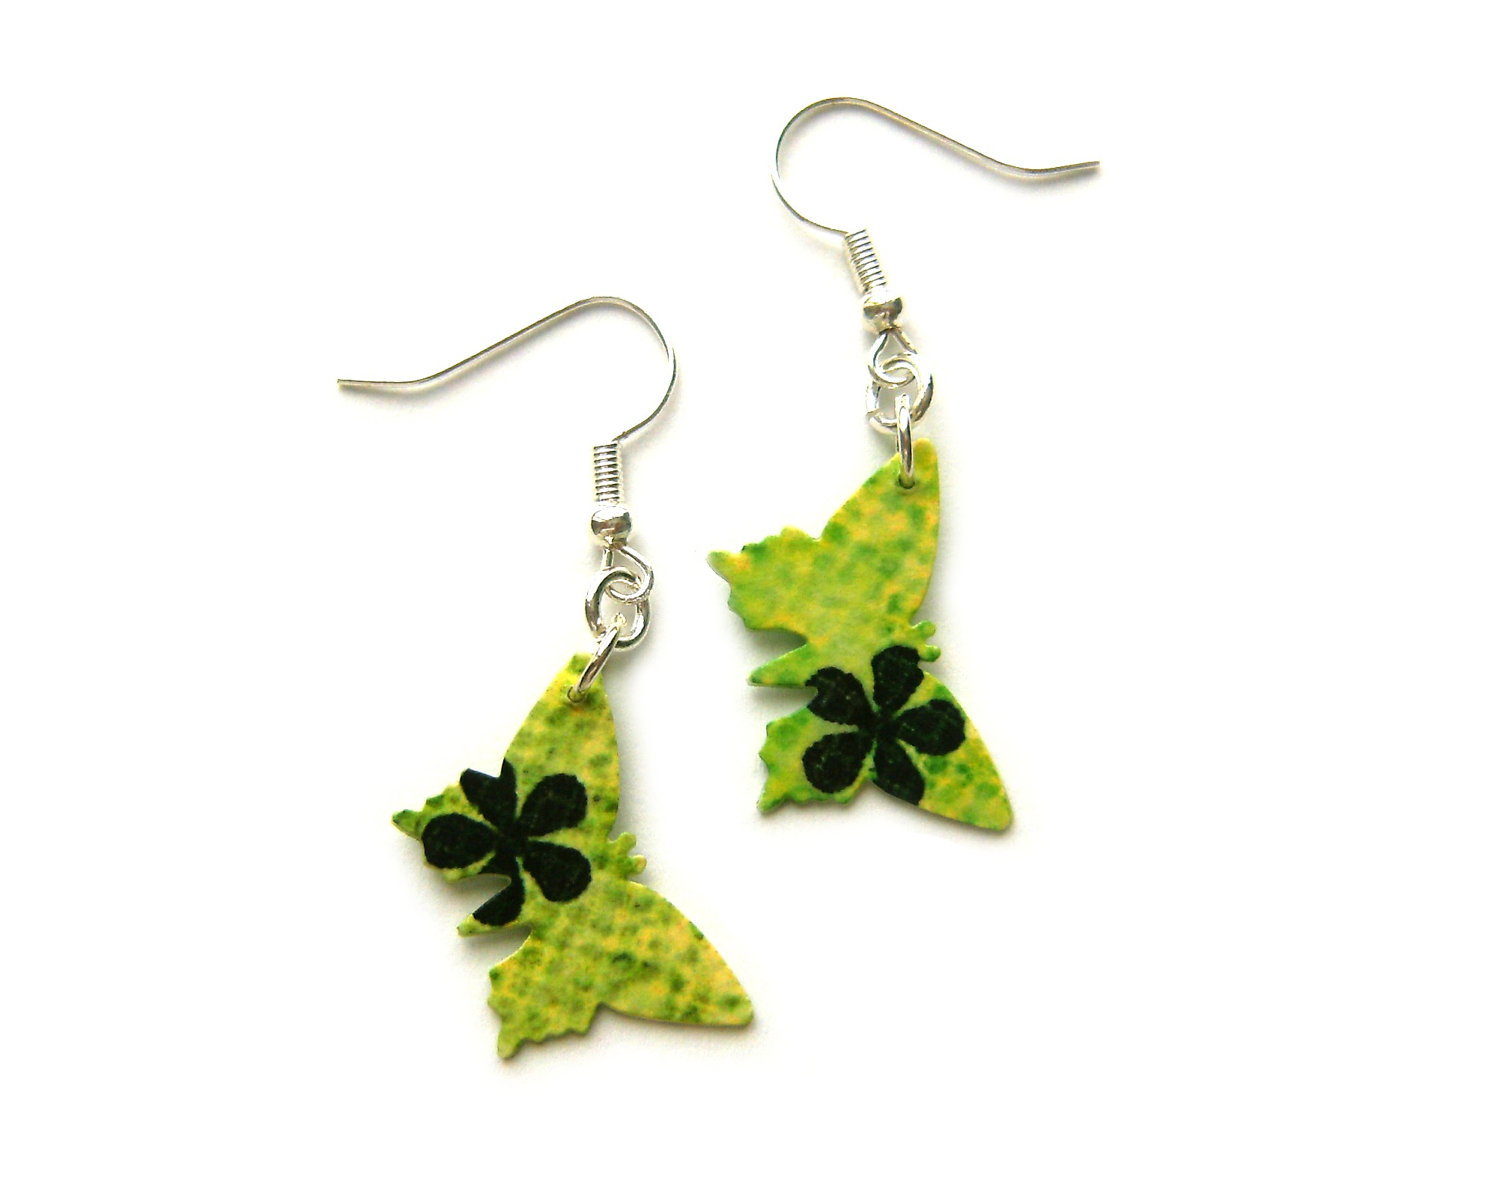 https://www.etsy.com/listing/71318411/green-paper-butterflies-earrings-vintage?ref=shop_home_active_16